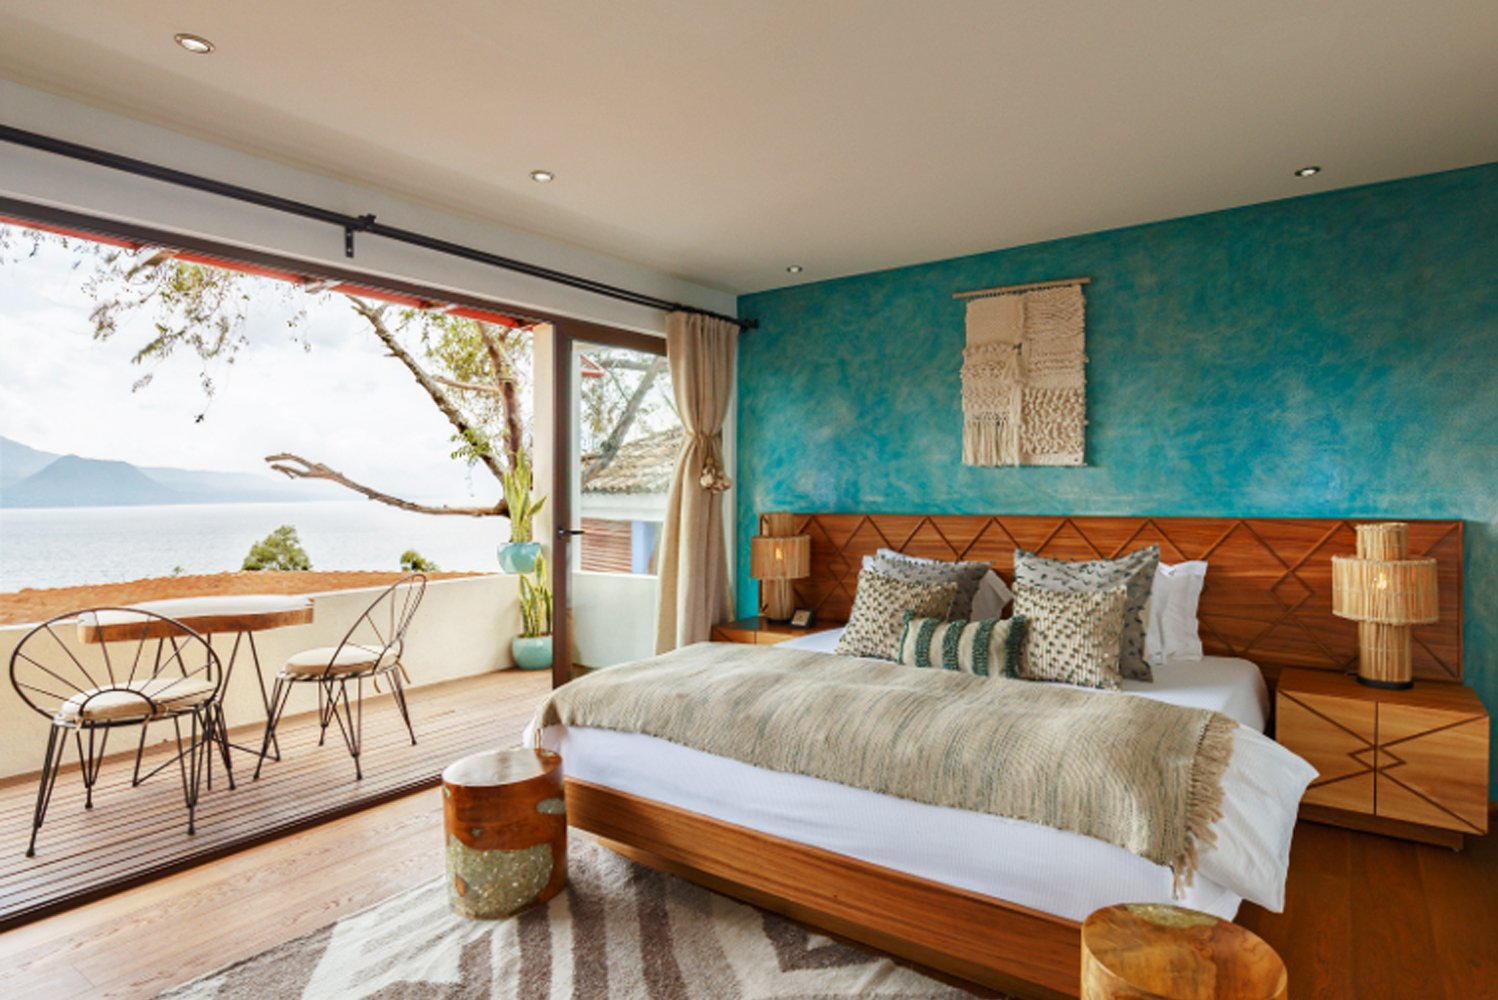 Industrial designer Diego Olivero oversaw the design of the new rooms.